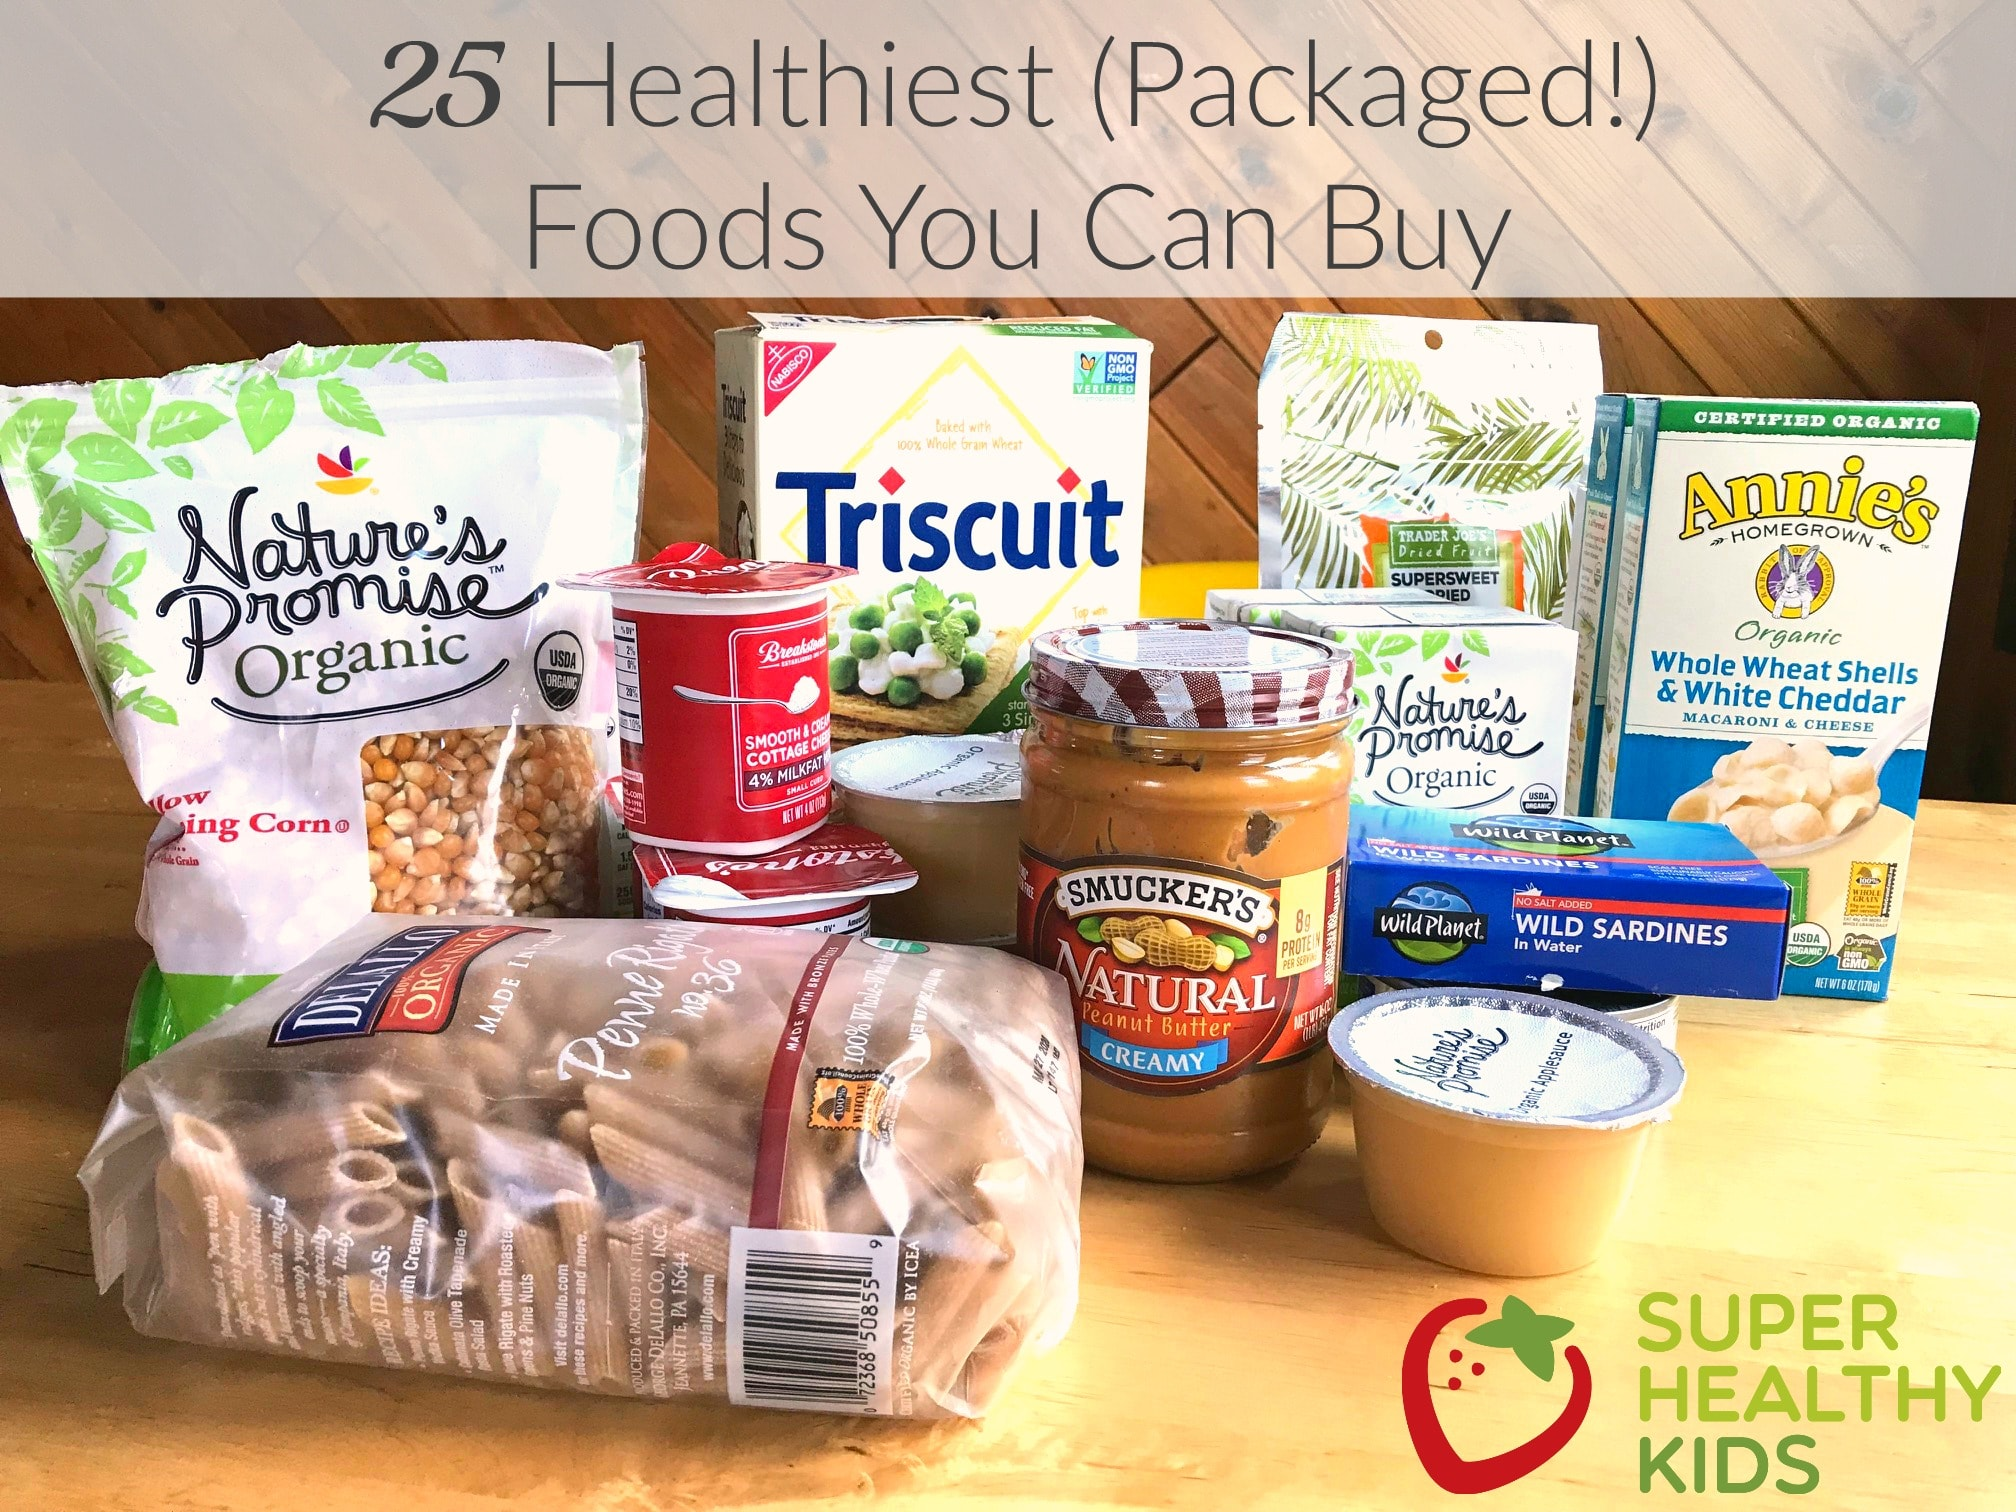 25 Healthiest Packaged Foods You Can Buy